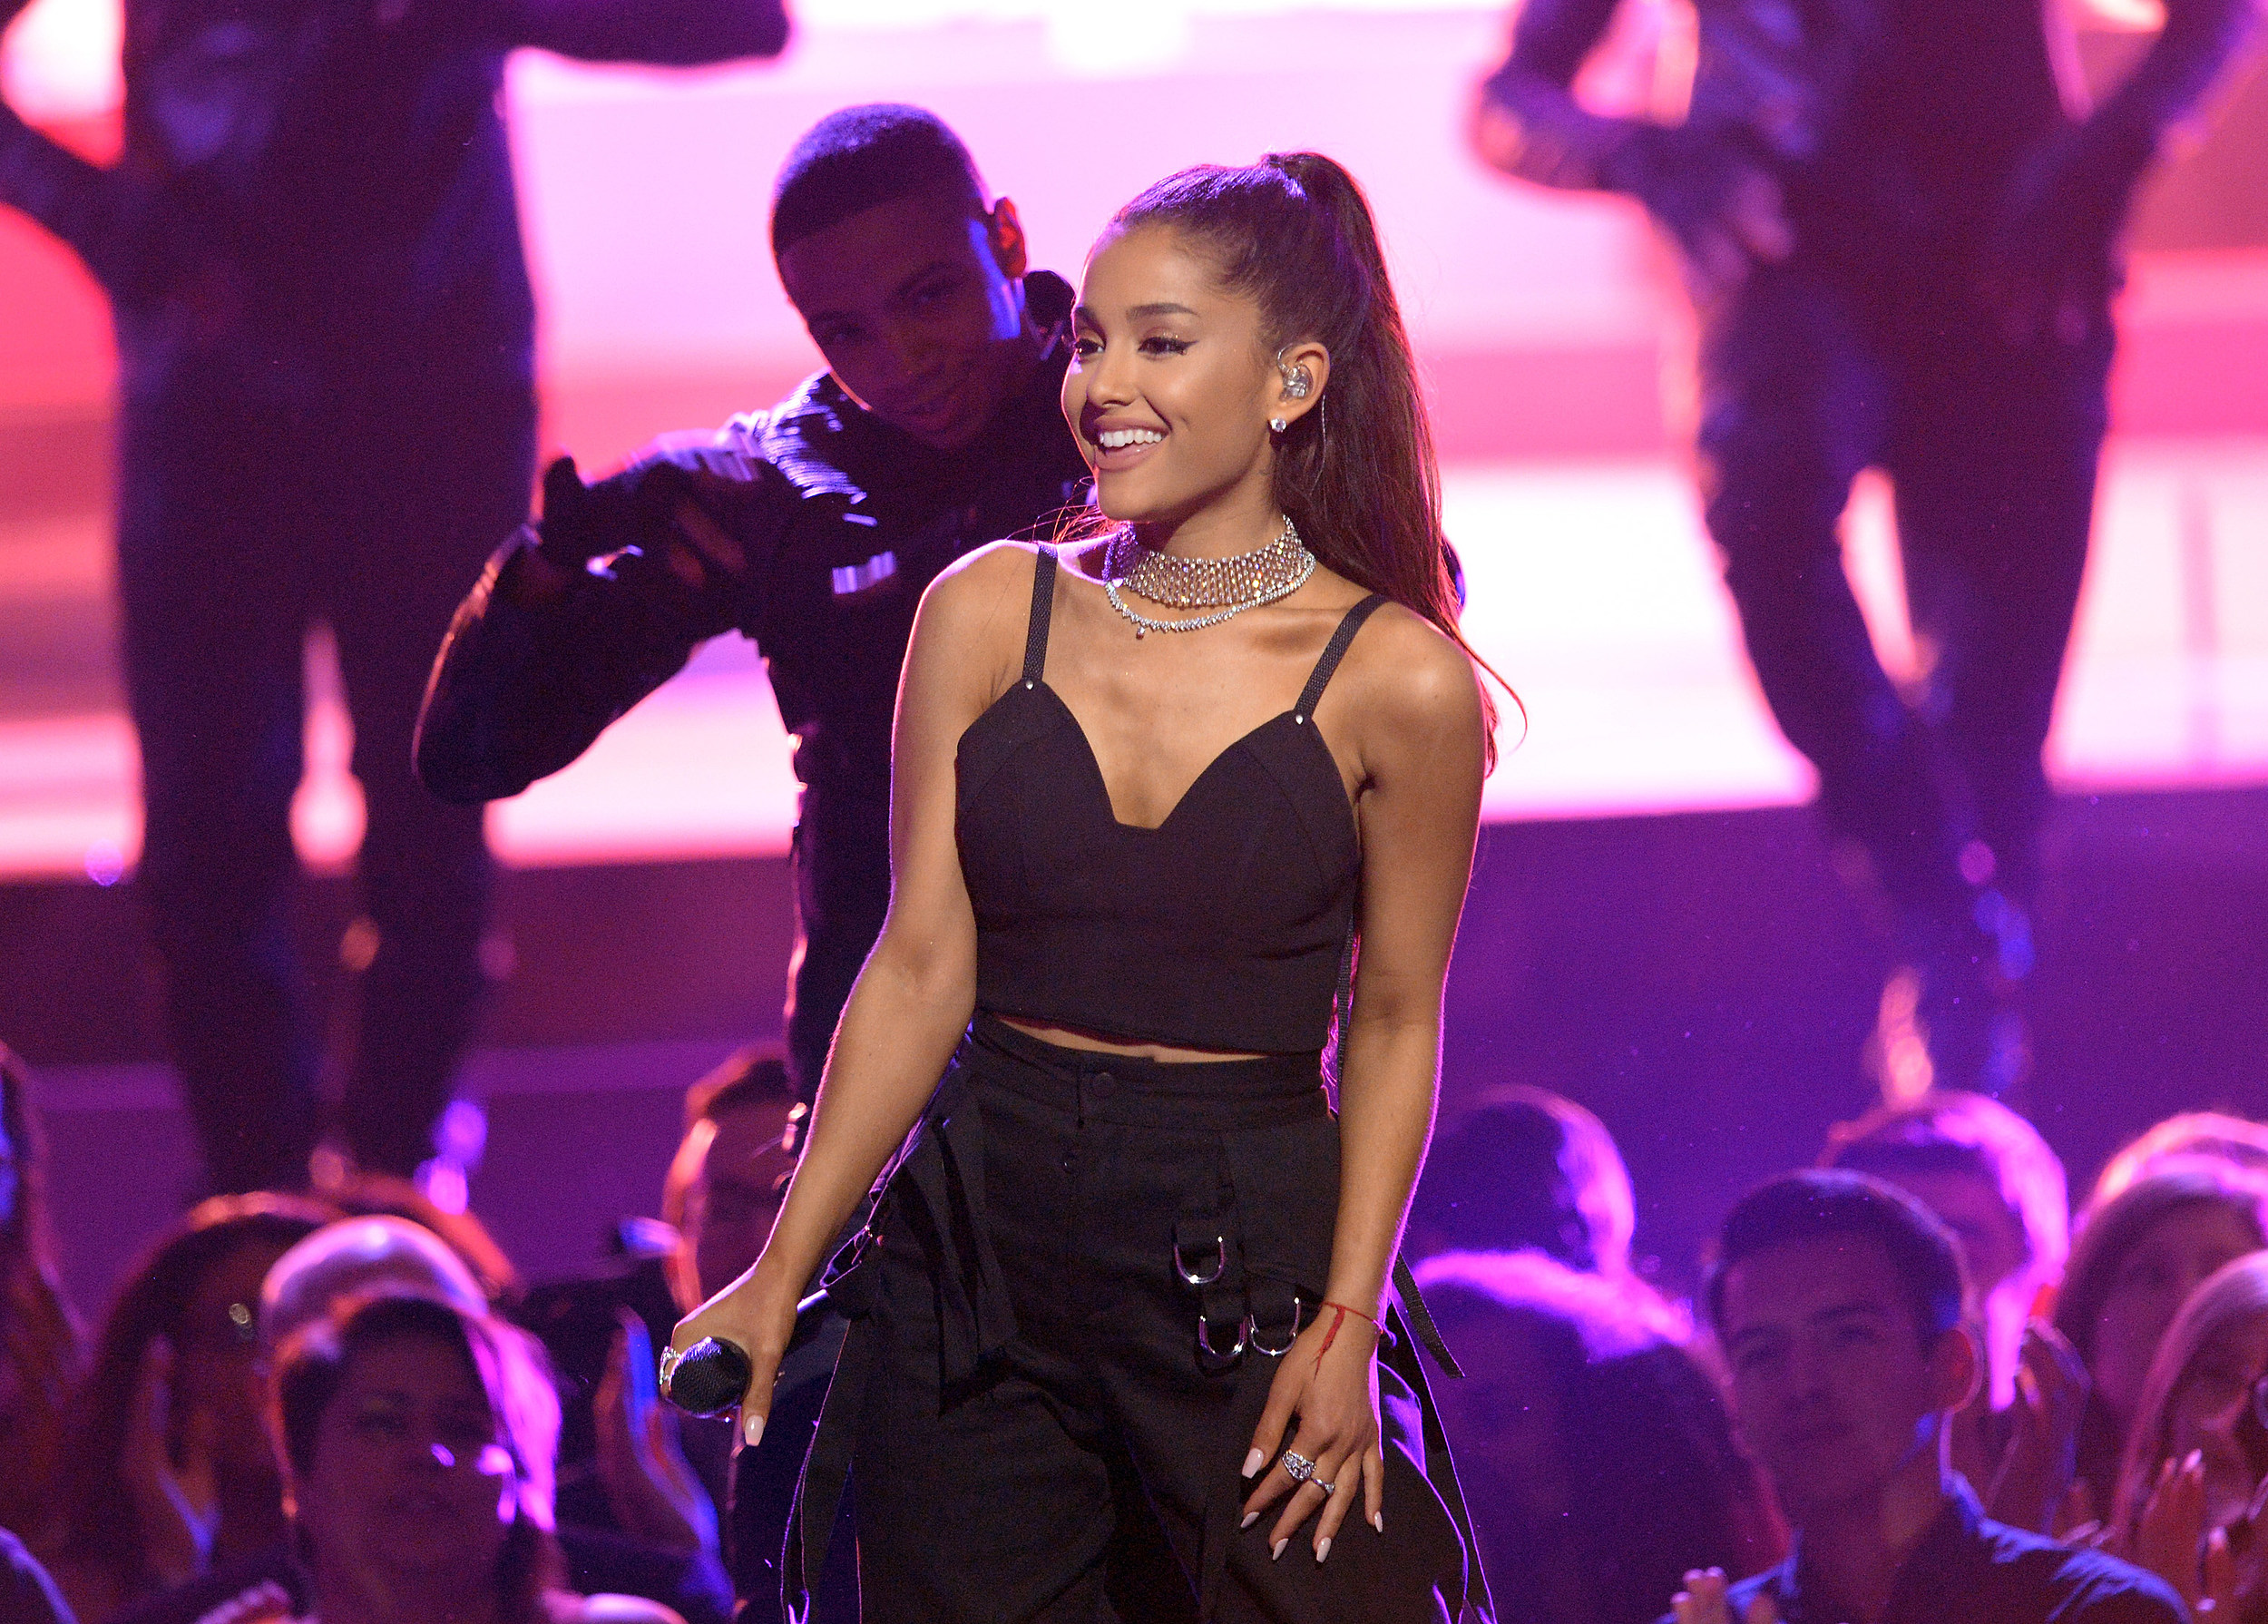 Ariana Grande replaces Whitney Houston hologram on 'Voice'